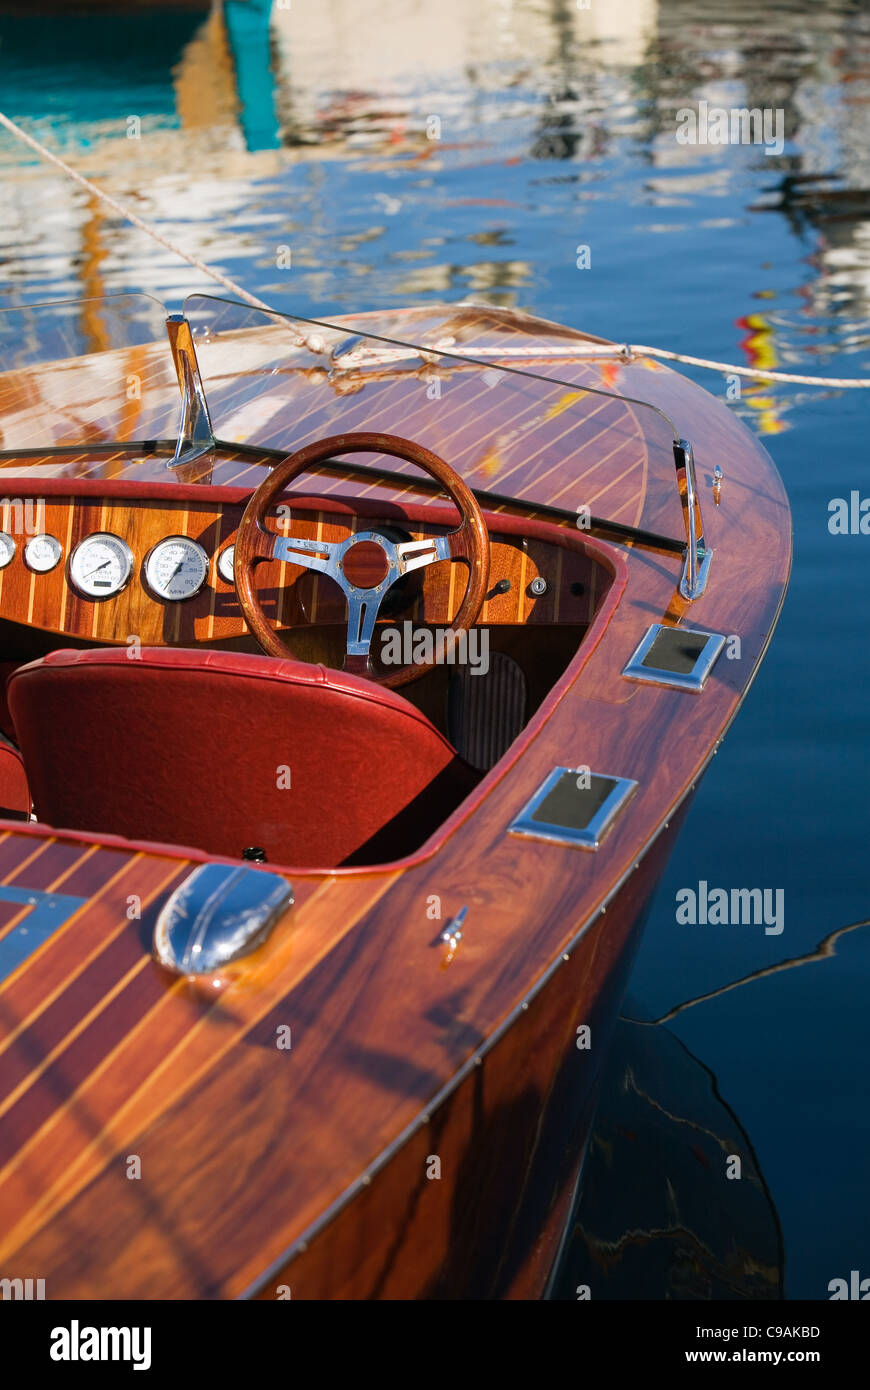 A Wooden Motorboat On Show During The Bi Annual Wooden Boat Festival